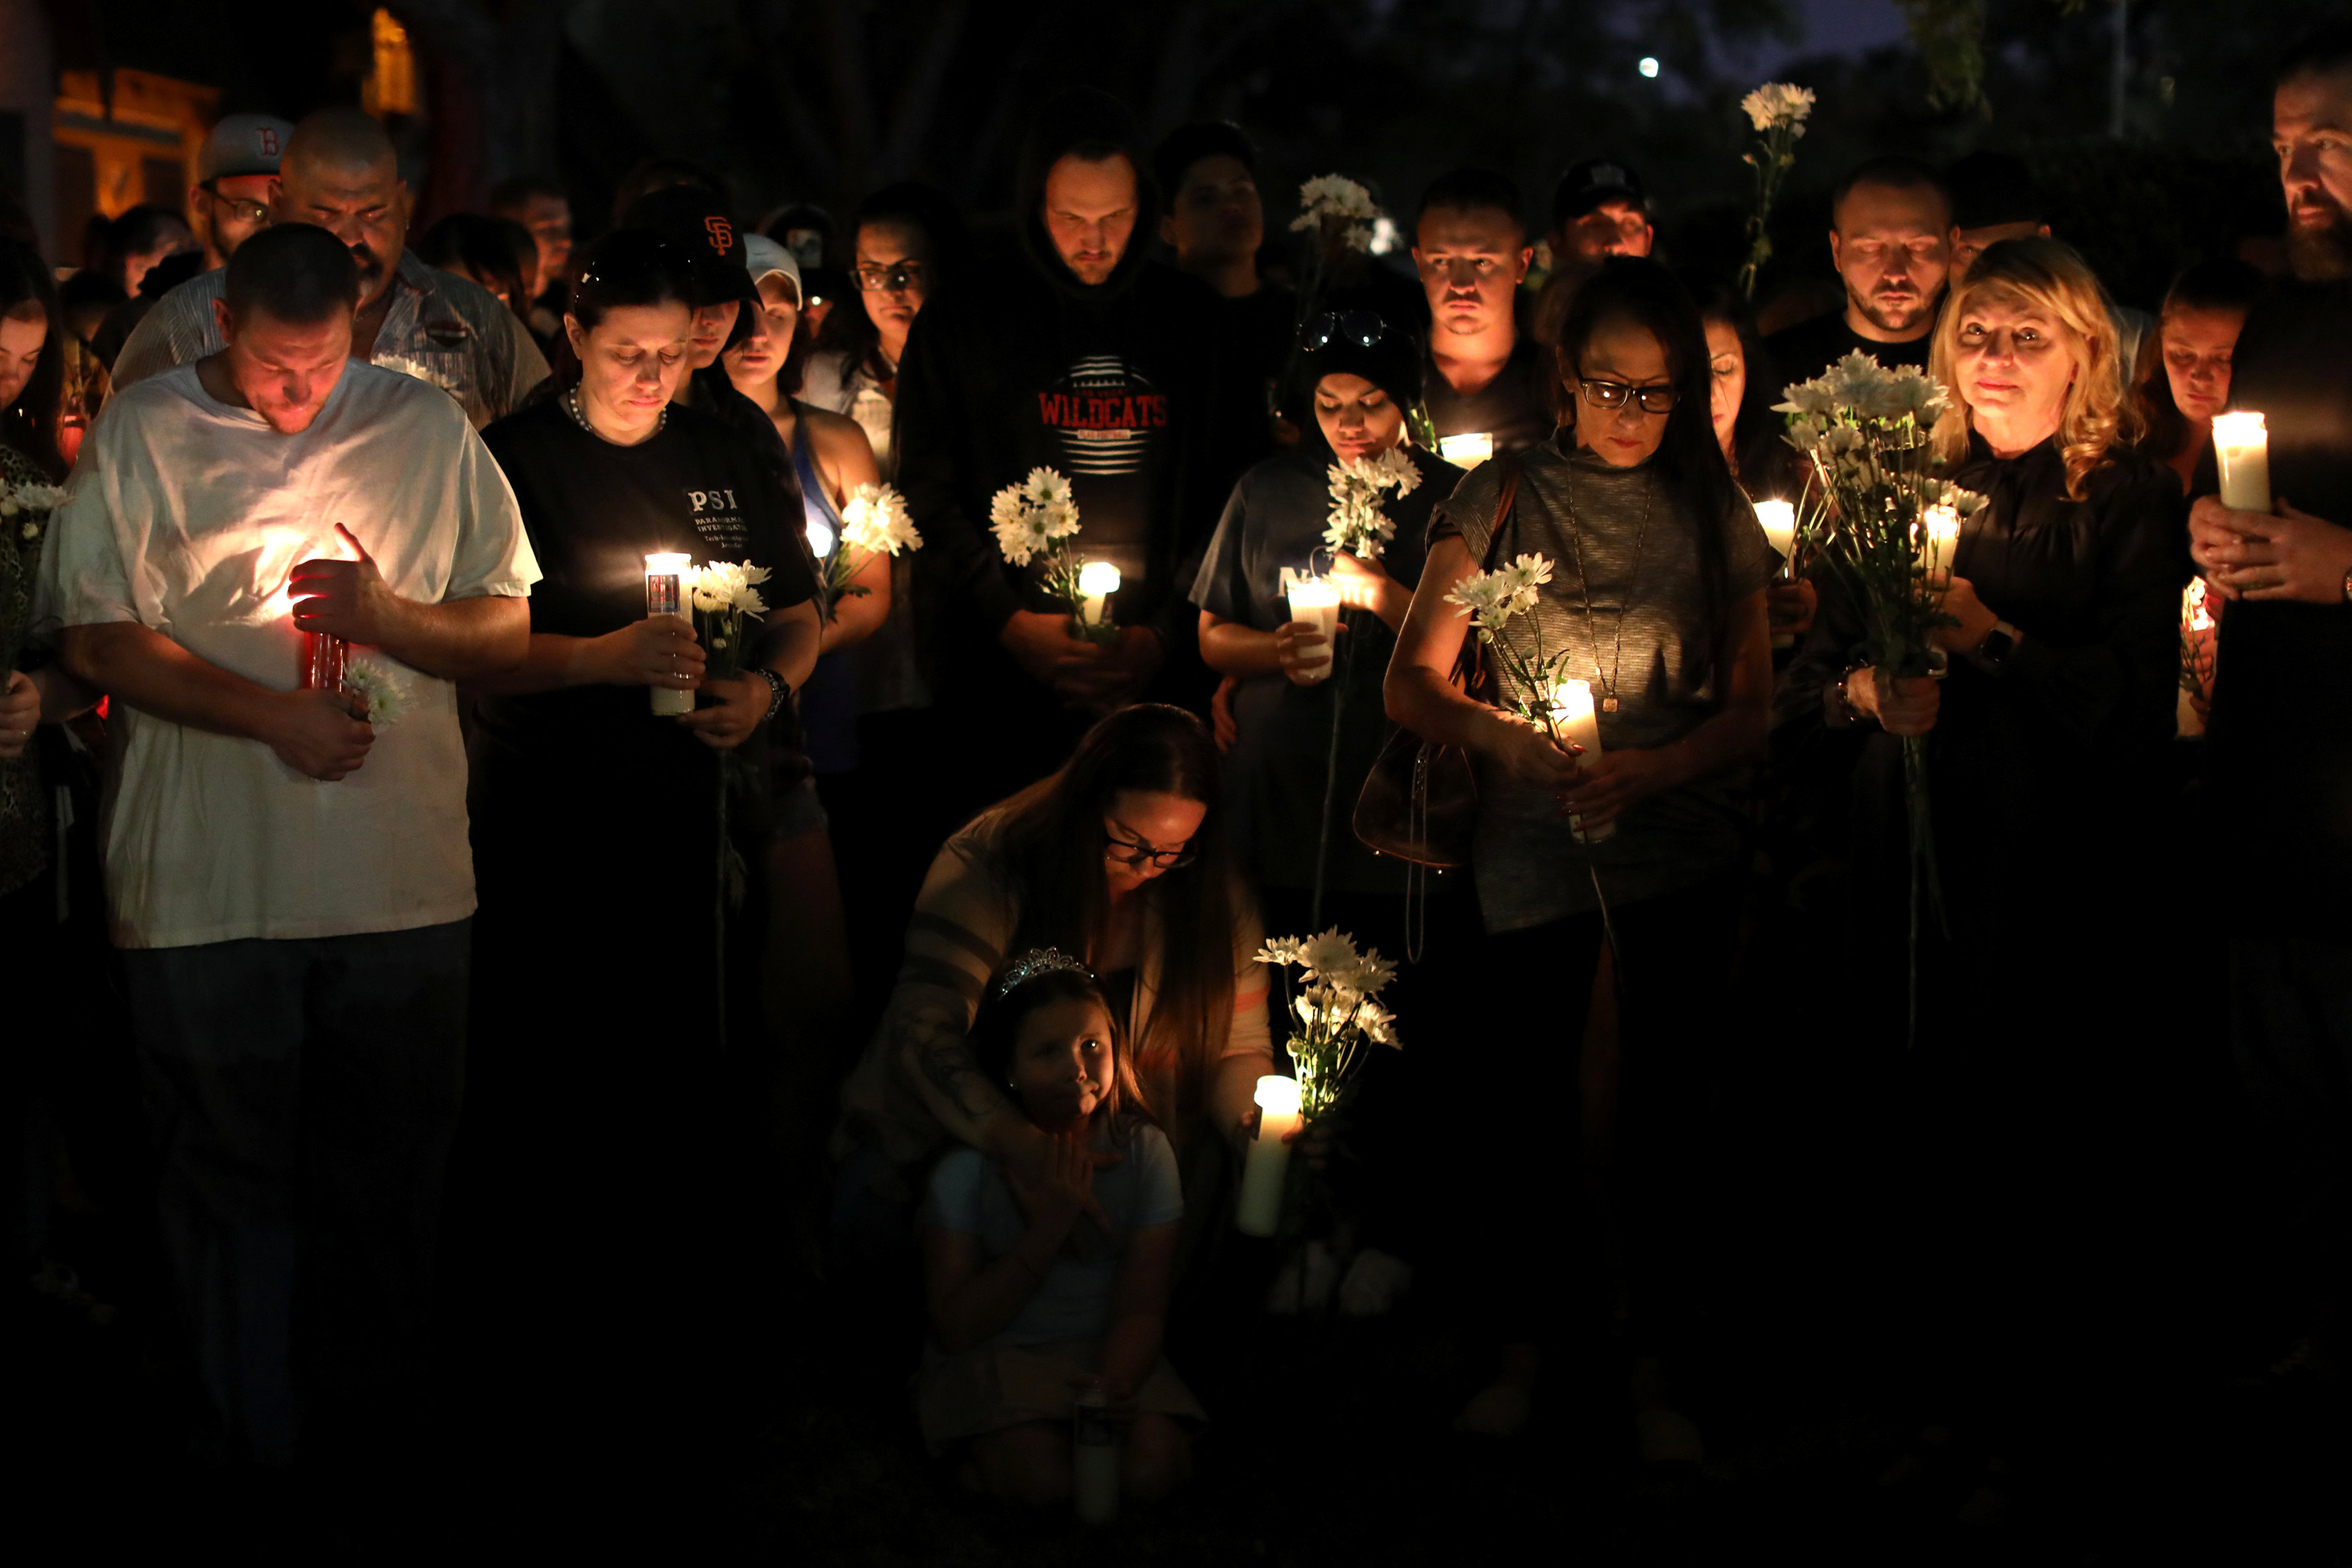 A candlelight vigil is held at Zack Bagans Haunted Museum in remembrance of victims following the mass shooting along the Las Vegas Strip in Las Vegas, Nevada, U.S., October 3, 2017. REUTERS/Mike Blake